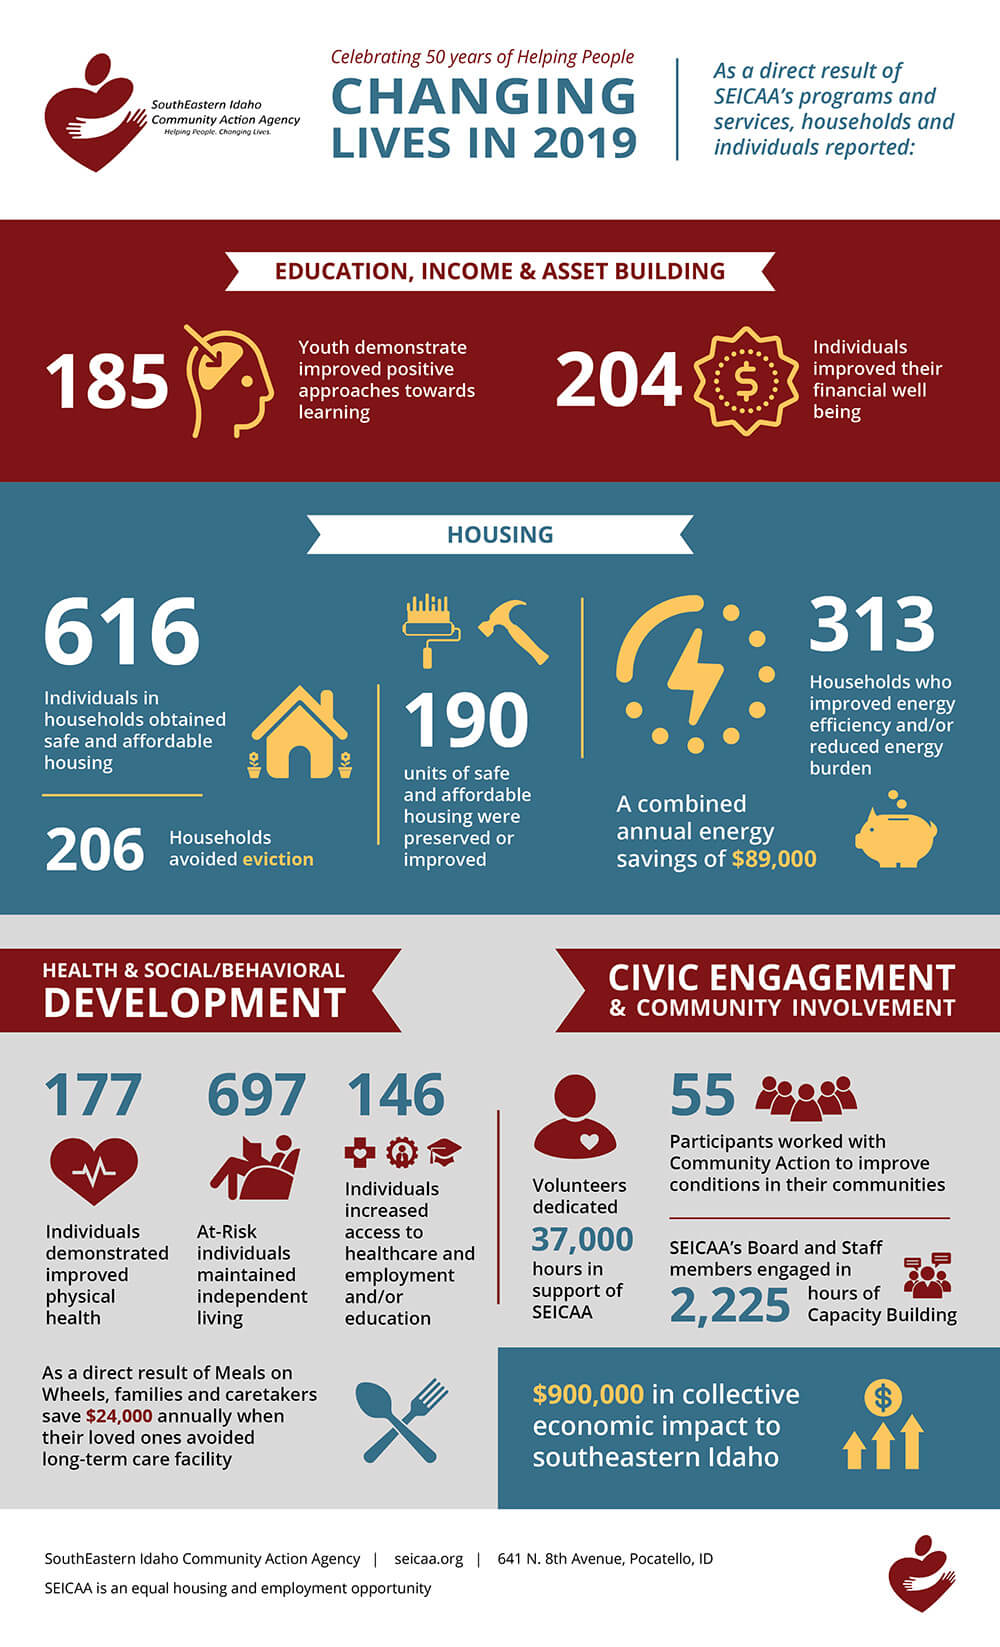 SEICAA changing lives in 2019 infographic